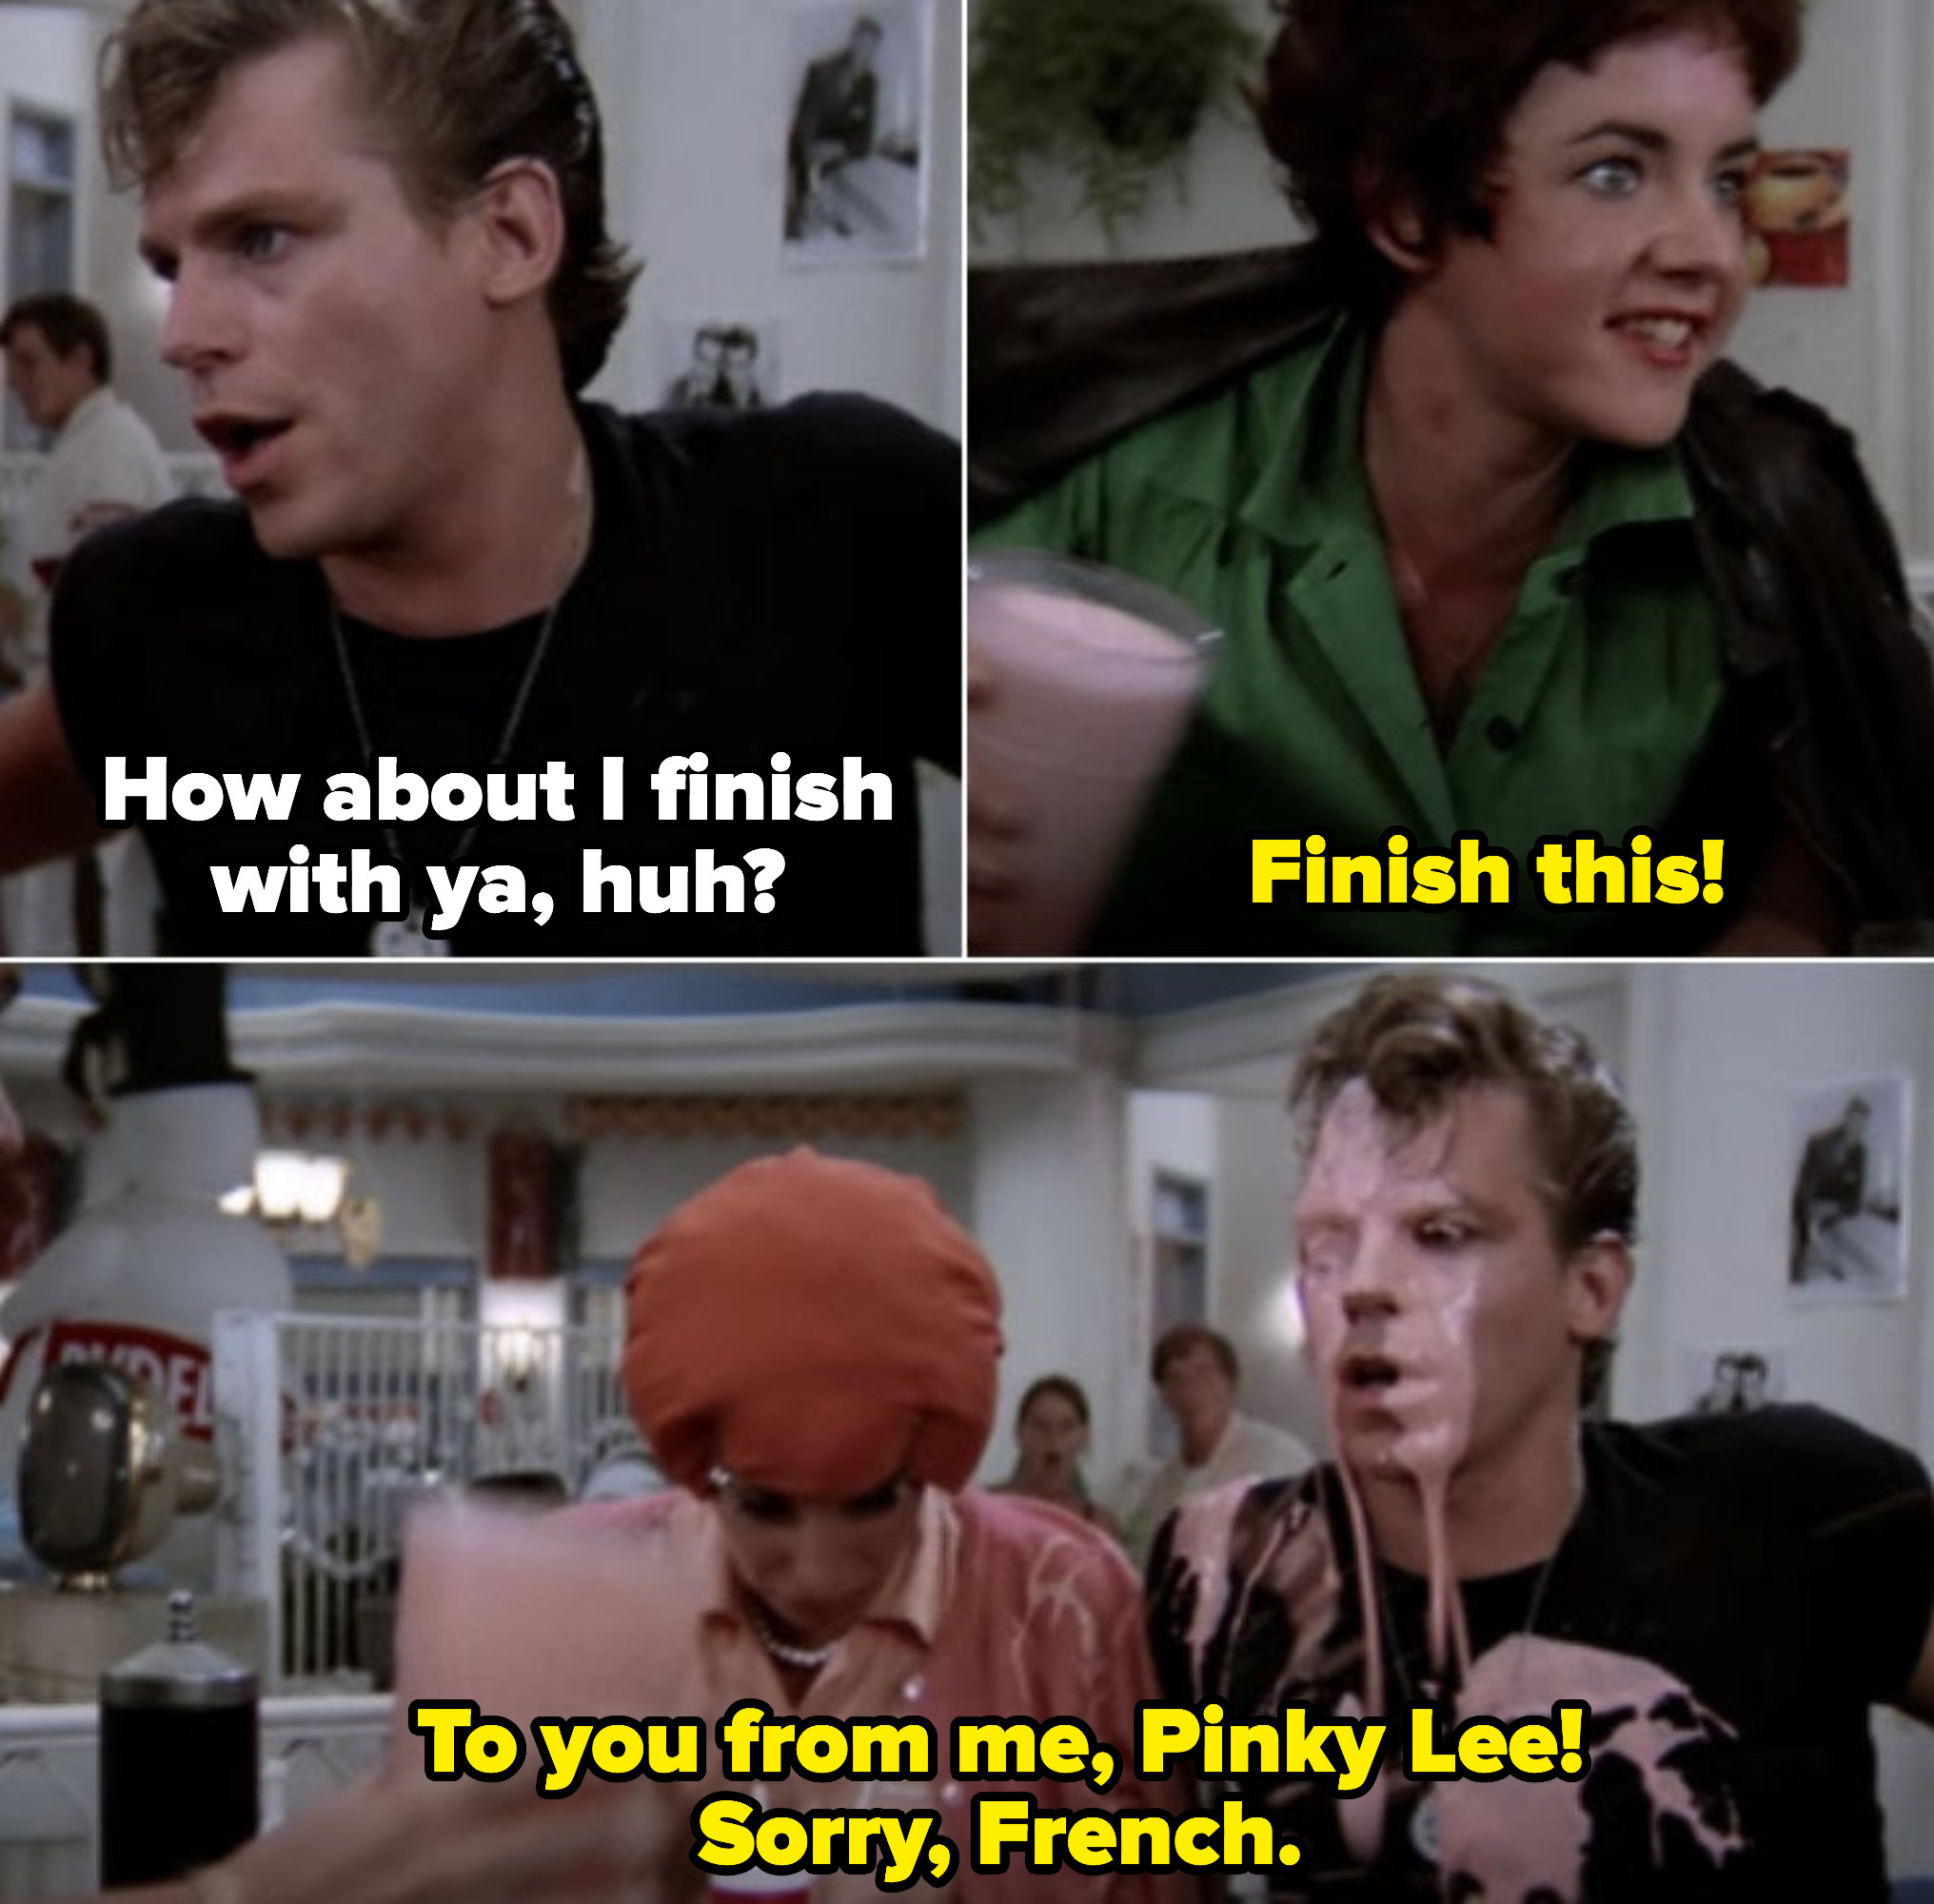 """Kenickie mistreating Rizzo at the diner; with a vengeance, Rizzo angrily responds by throwing a milkshake in his face while saying: """"Finish this! To you from me, Pinky Lee!"""""""